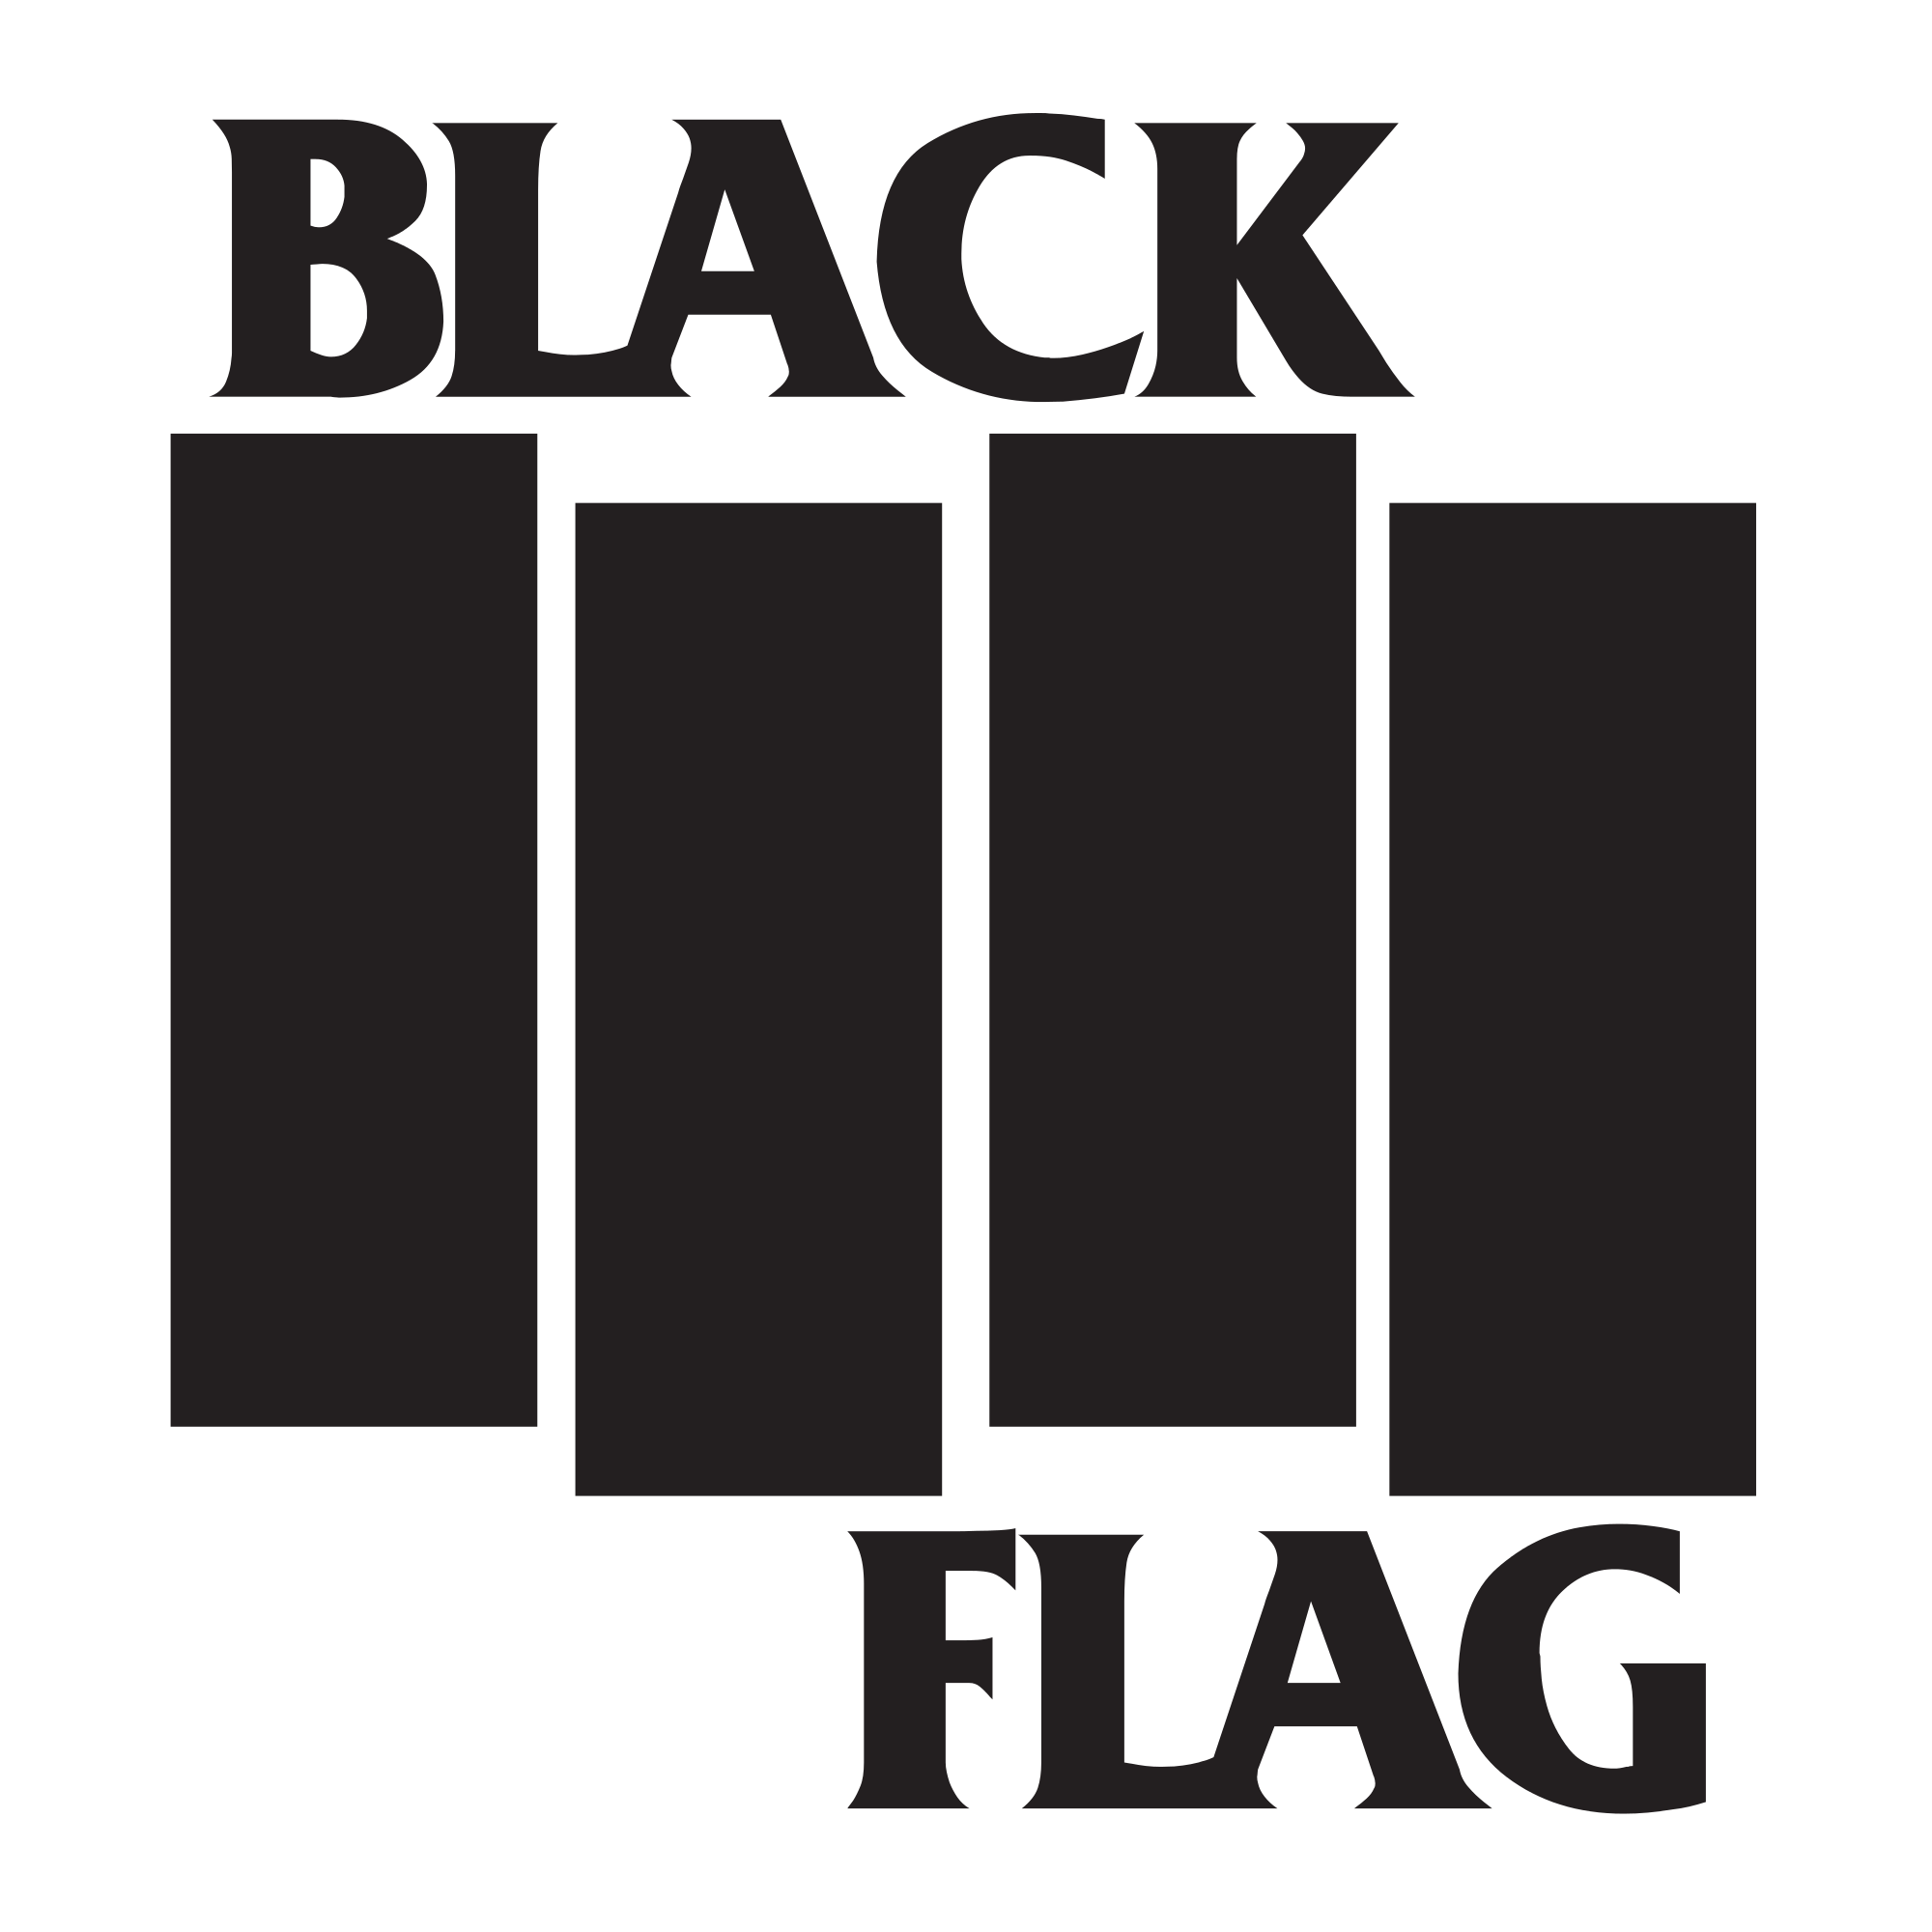 clipart stock File black flag logo. Vector bands poster